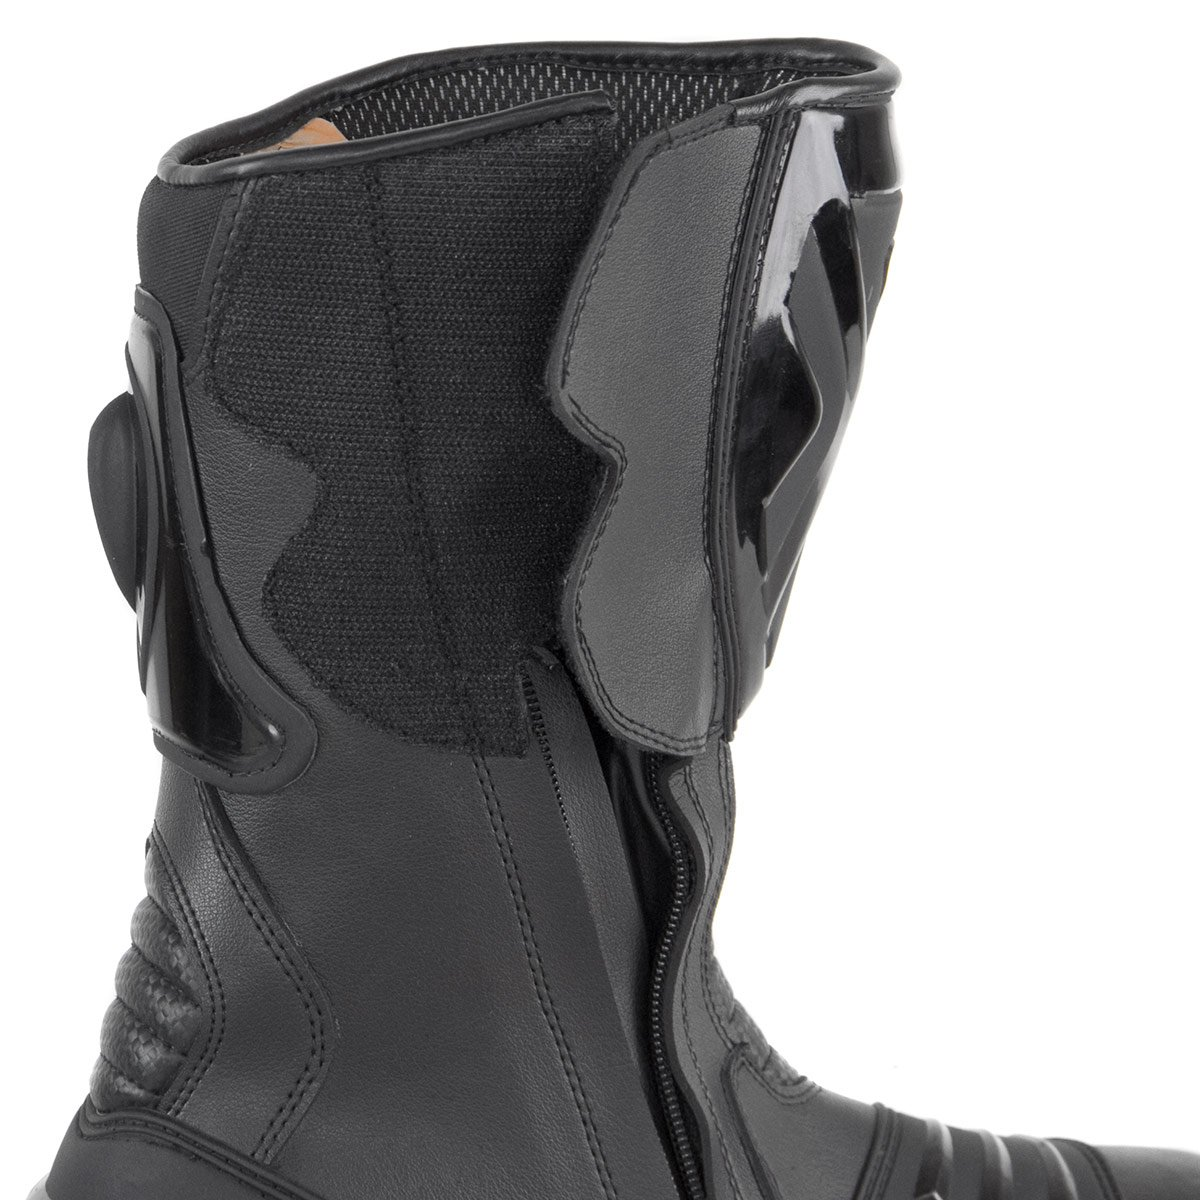 Vulcan V300 Mens Velocity Motorcycle Sport Boots - 11 by Vulcan (Image #2)